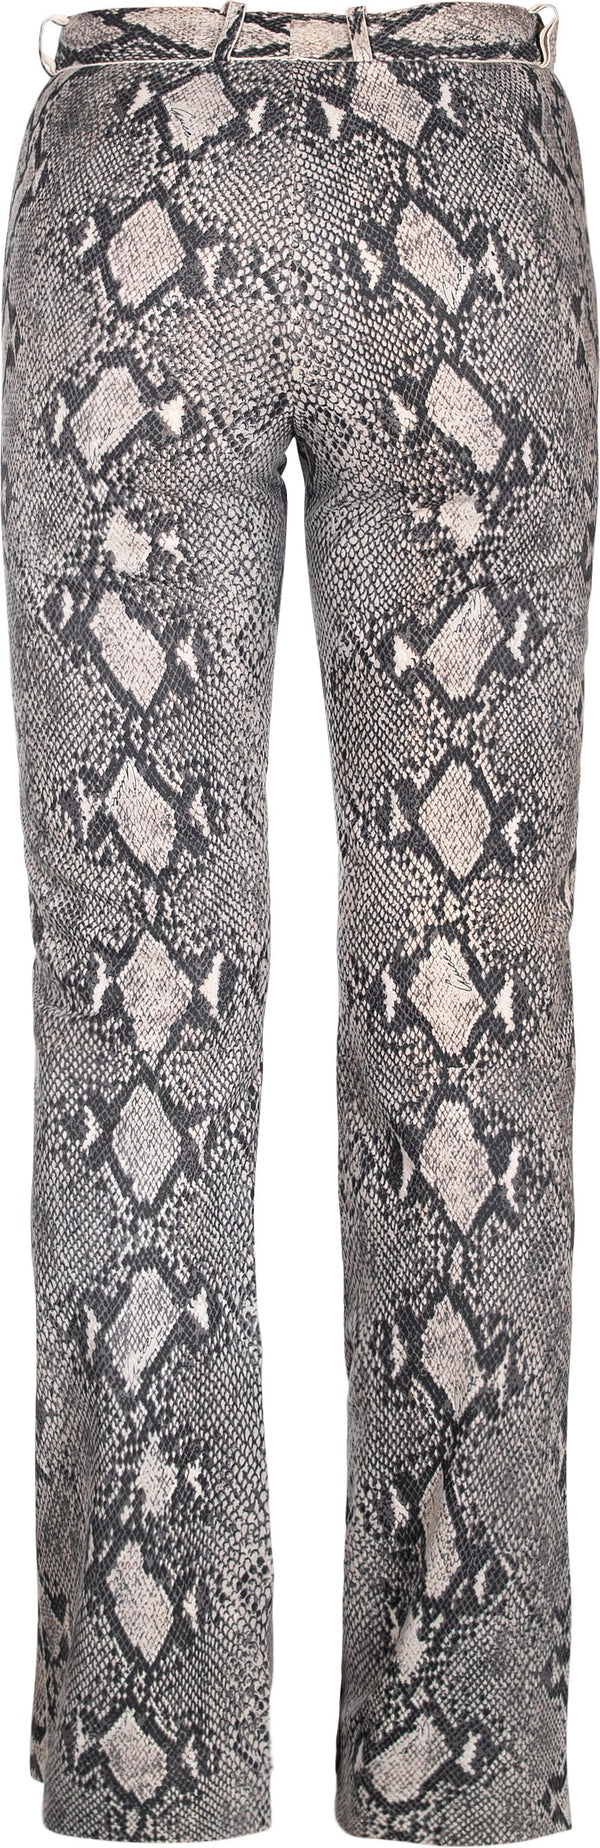 Gucci Spring 2000 Runway Python Printed Leather Pants